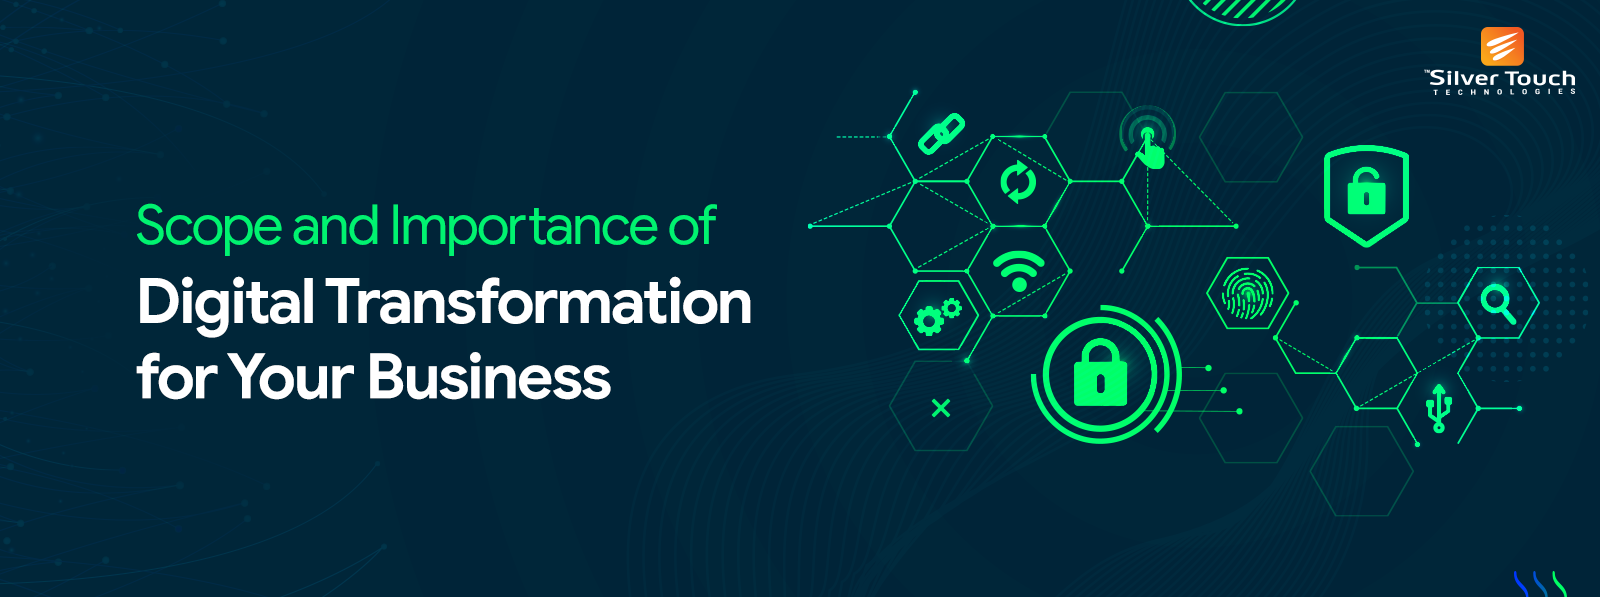 Scope and Importance of Digital Transformation for Your Business fb